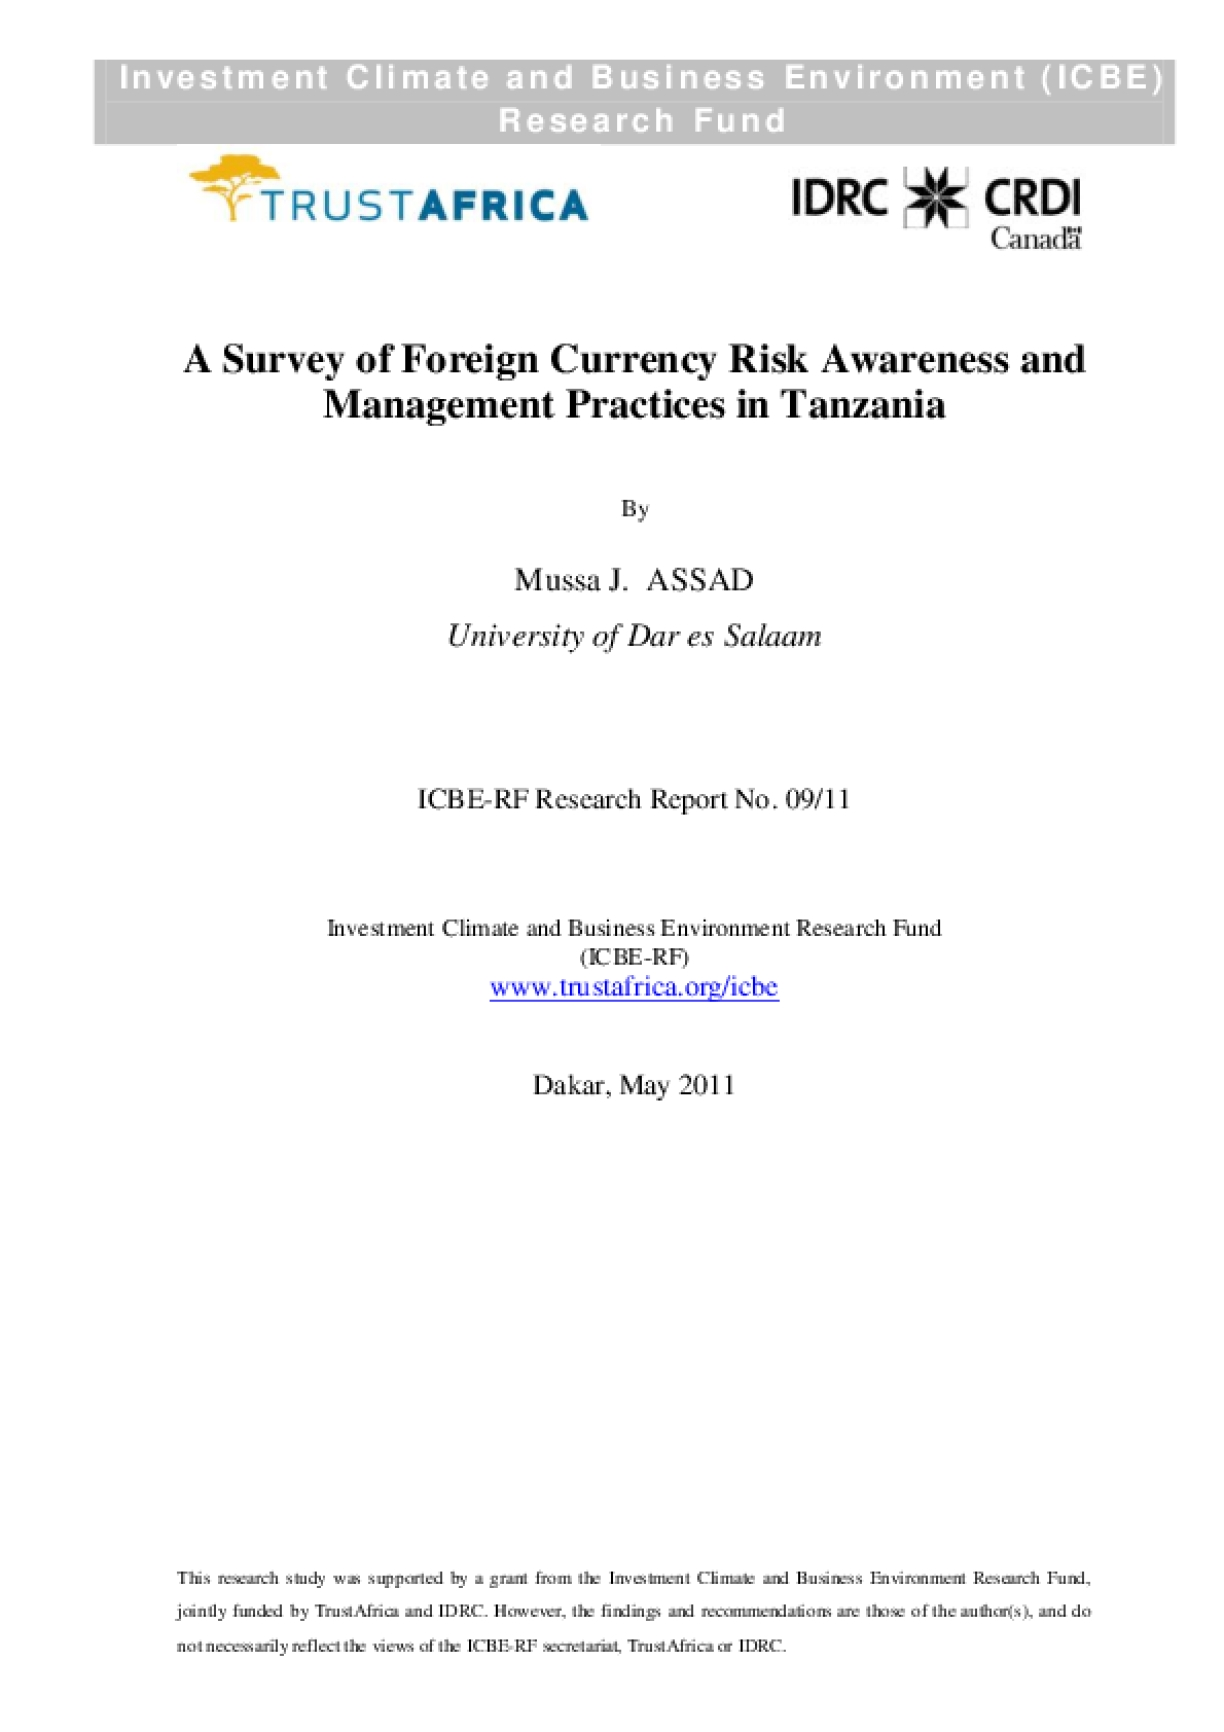 A Survey of Foreign Currency Risk Awareness and Management Practices in Tanzania